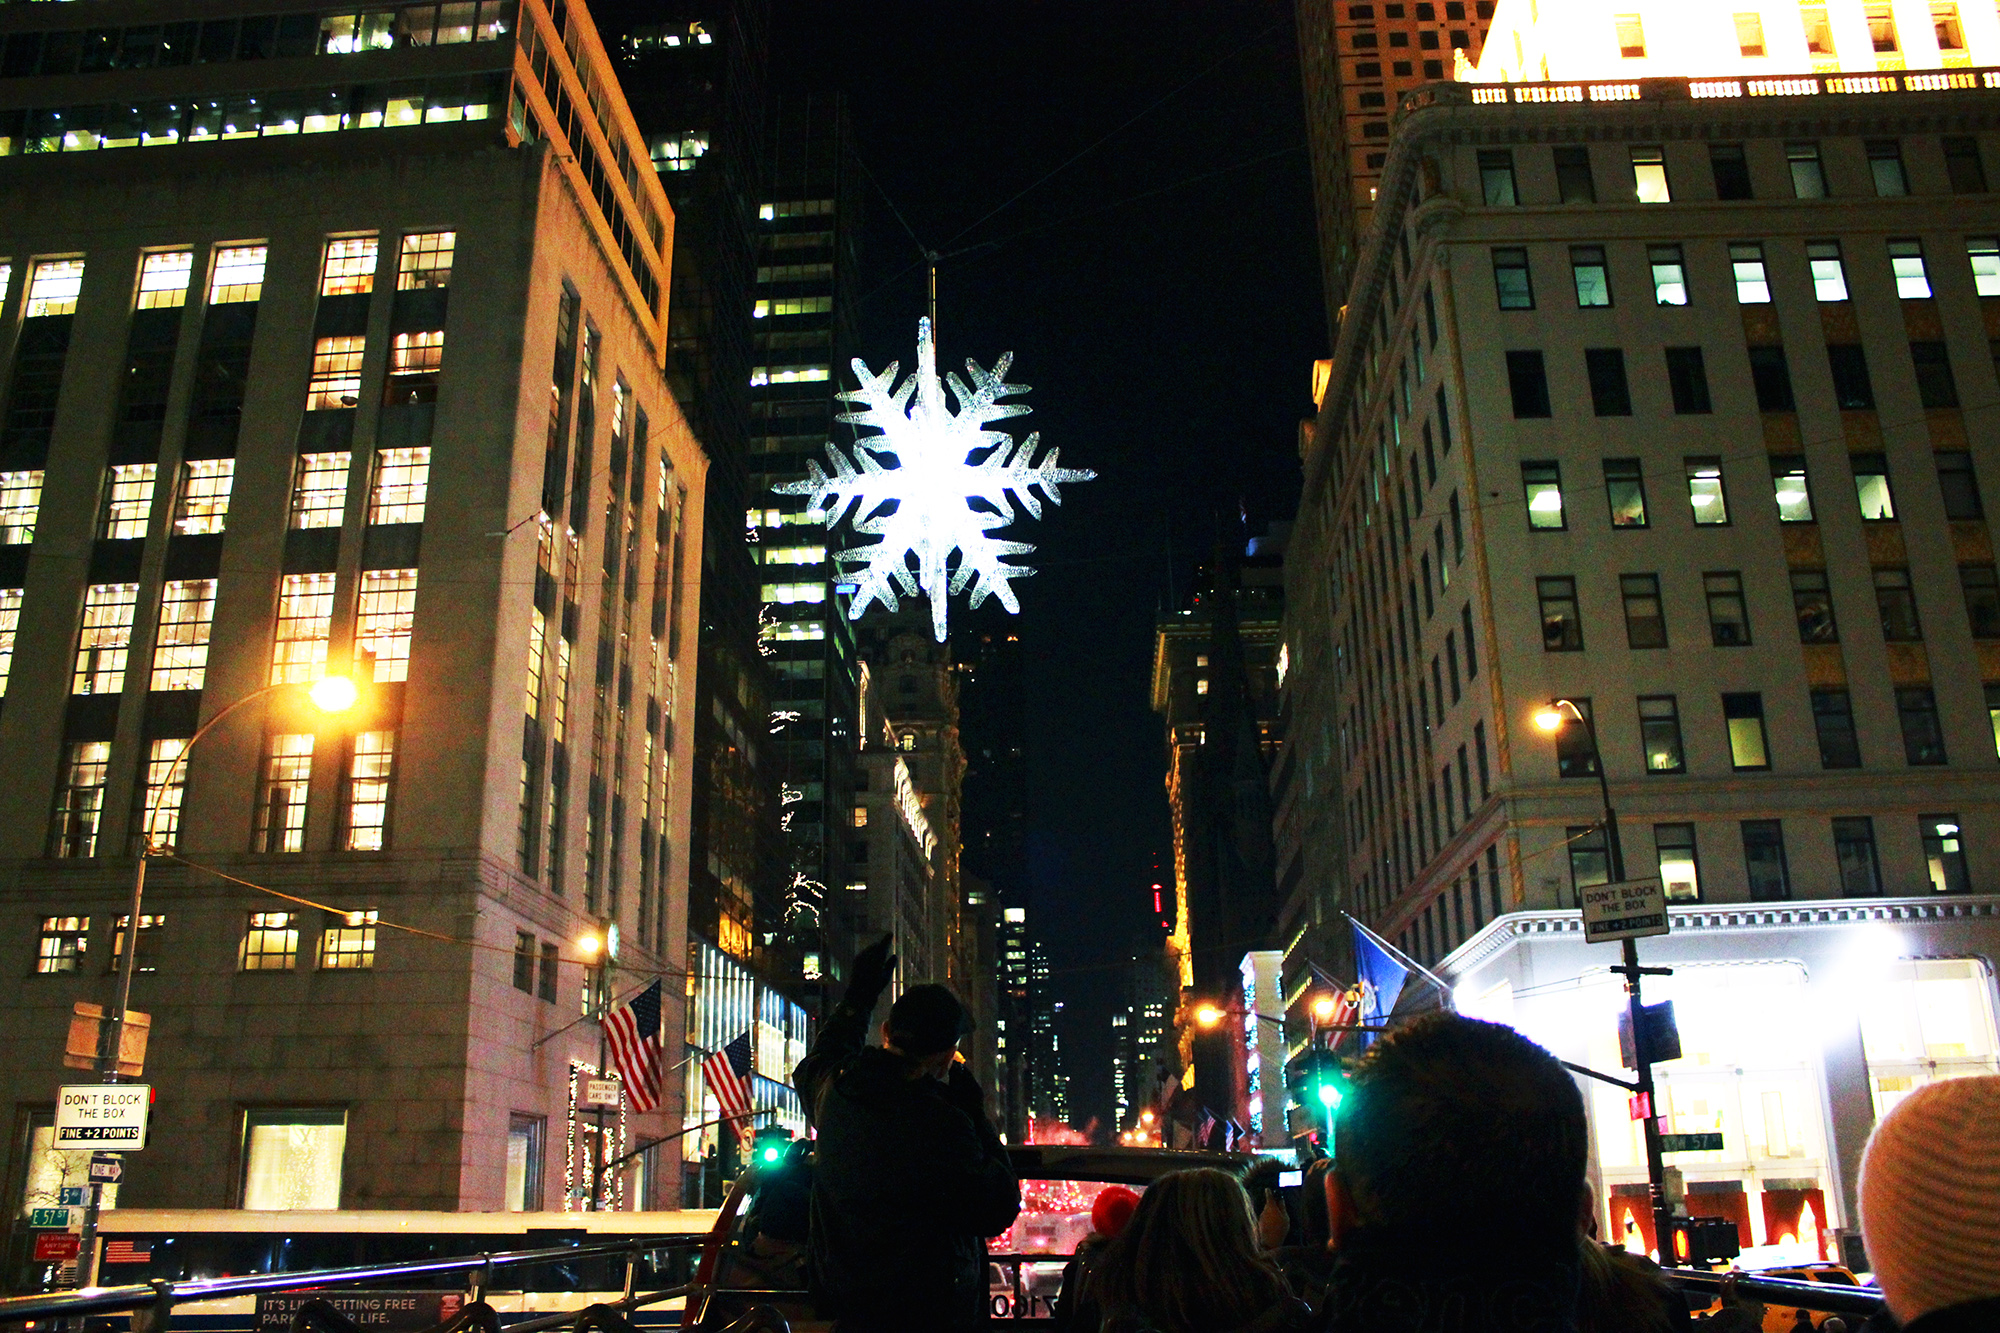 When is the rockefeller center christmas tree